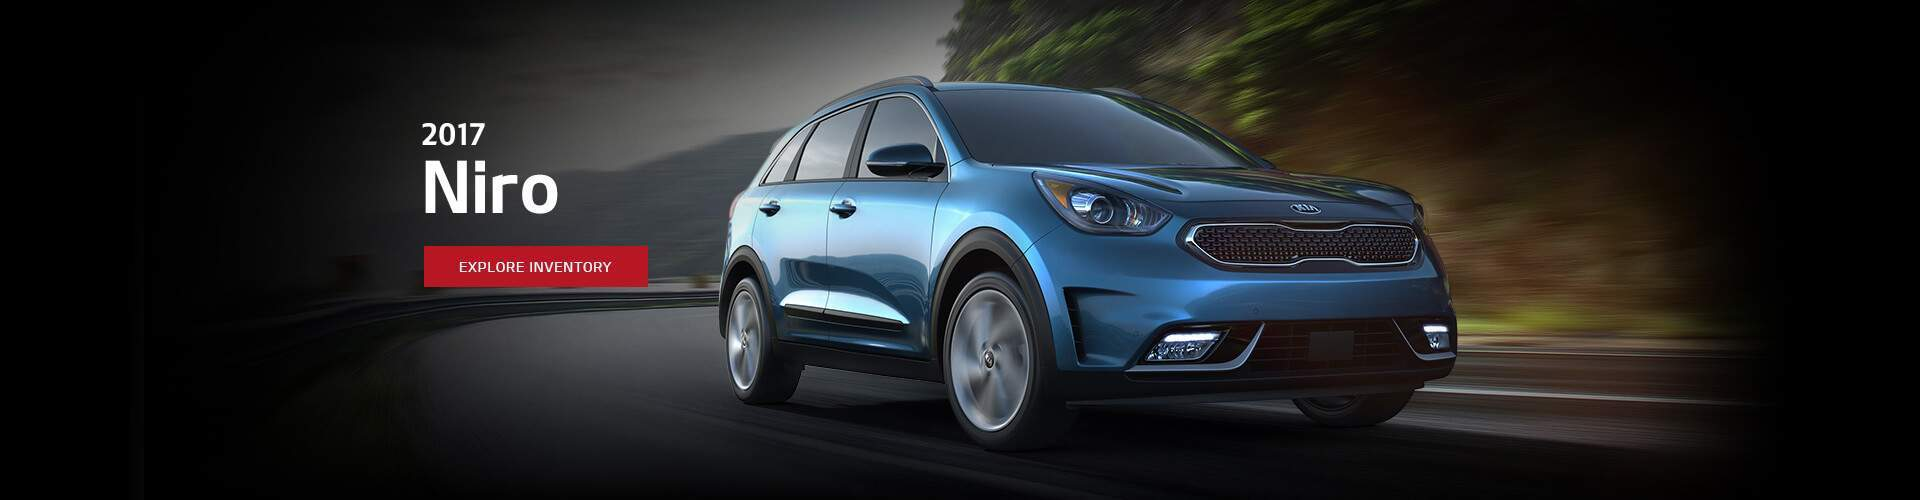 New Kia Niro at Kia of Easton